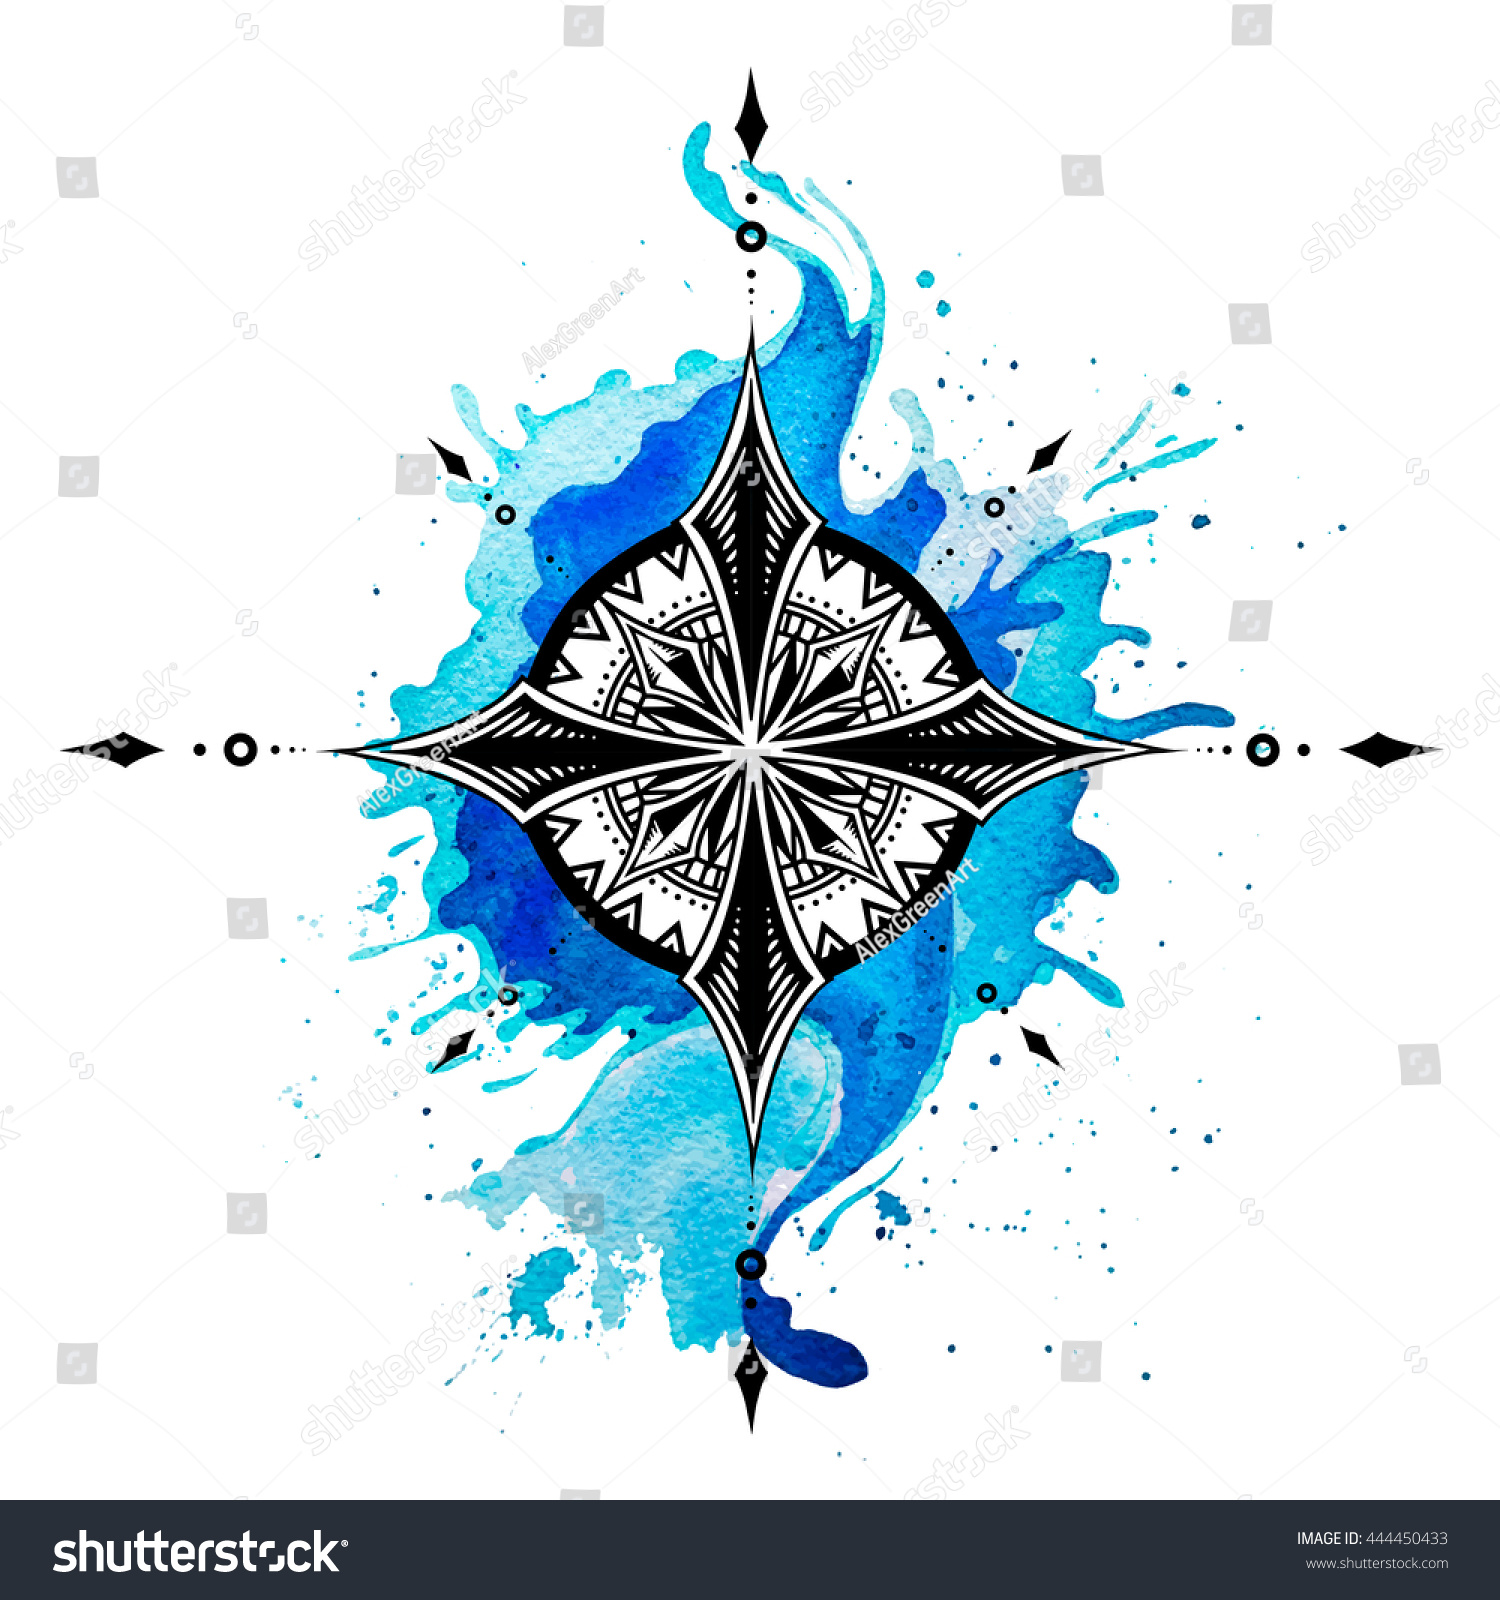 f27021dc3 Compass Ink Watercolor Drawing Watercolor Tattoo Stock Illustration ...